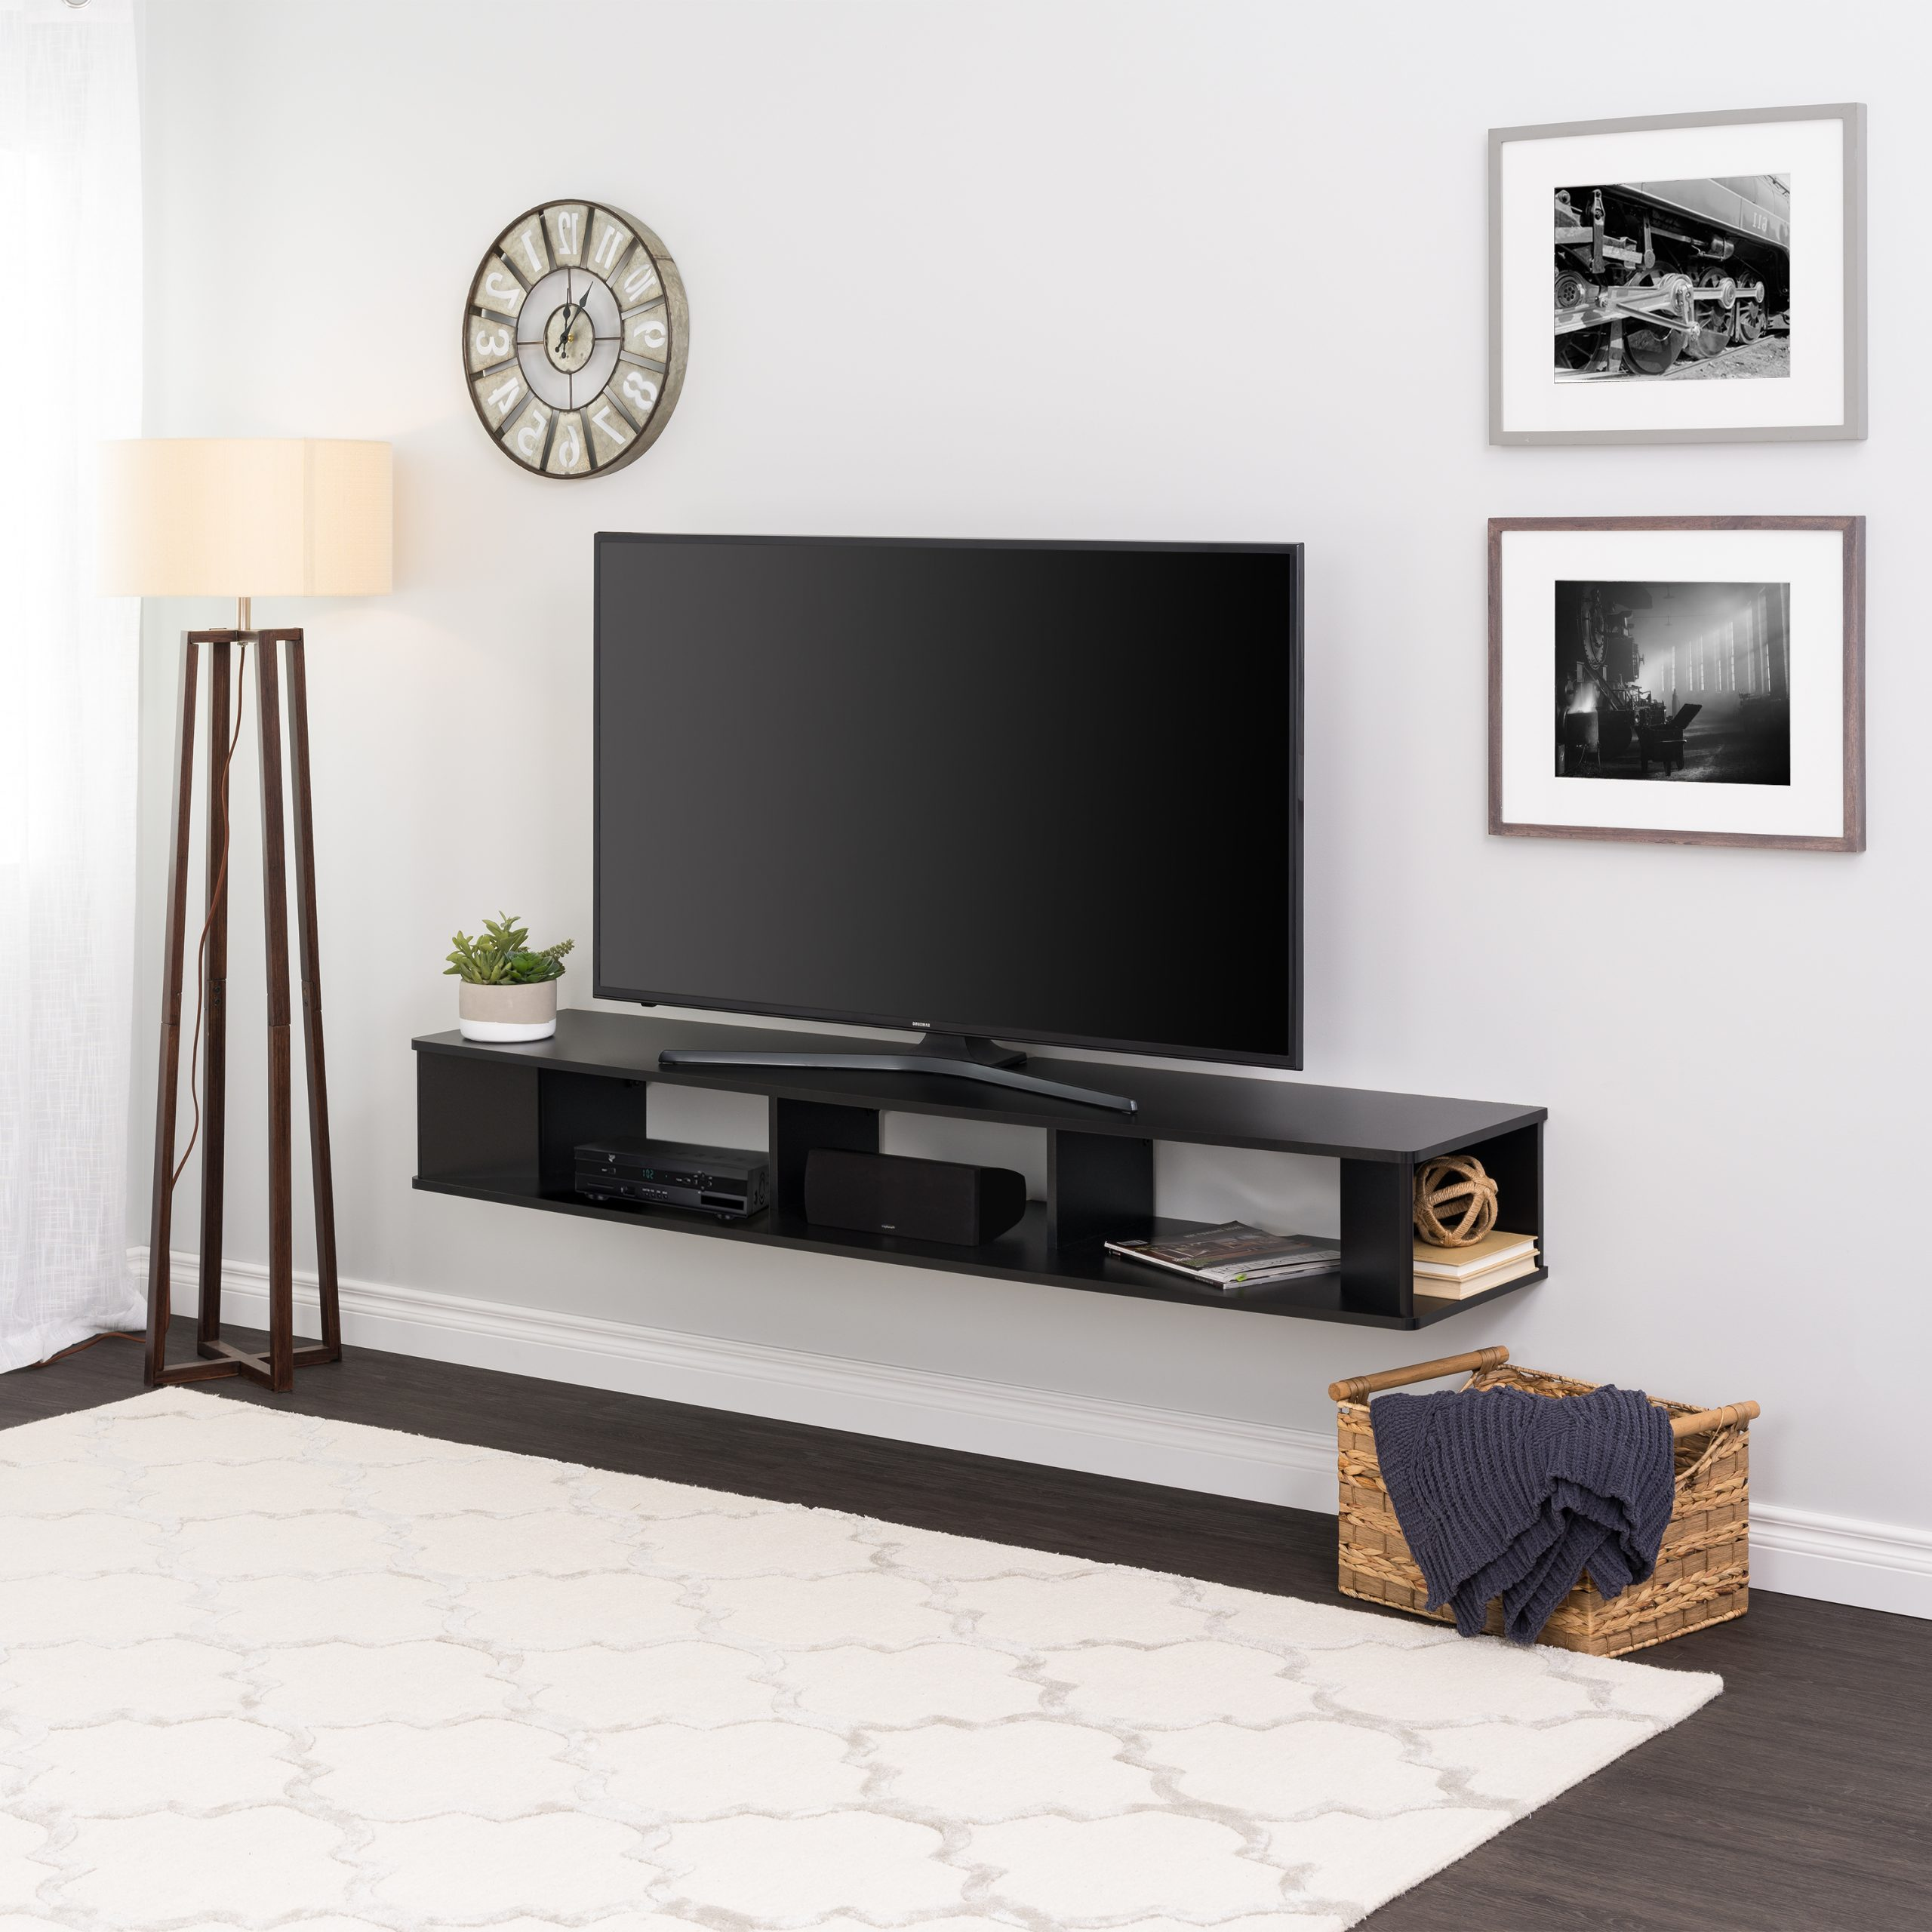 Prepac 70 Inch Wide Wall Mounted Tv Stand, Black – Walmart Within Greenwich Wide Tv Stands (View 8 of 20)